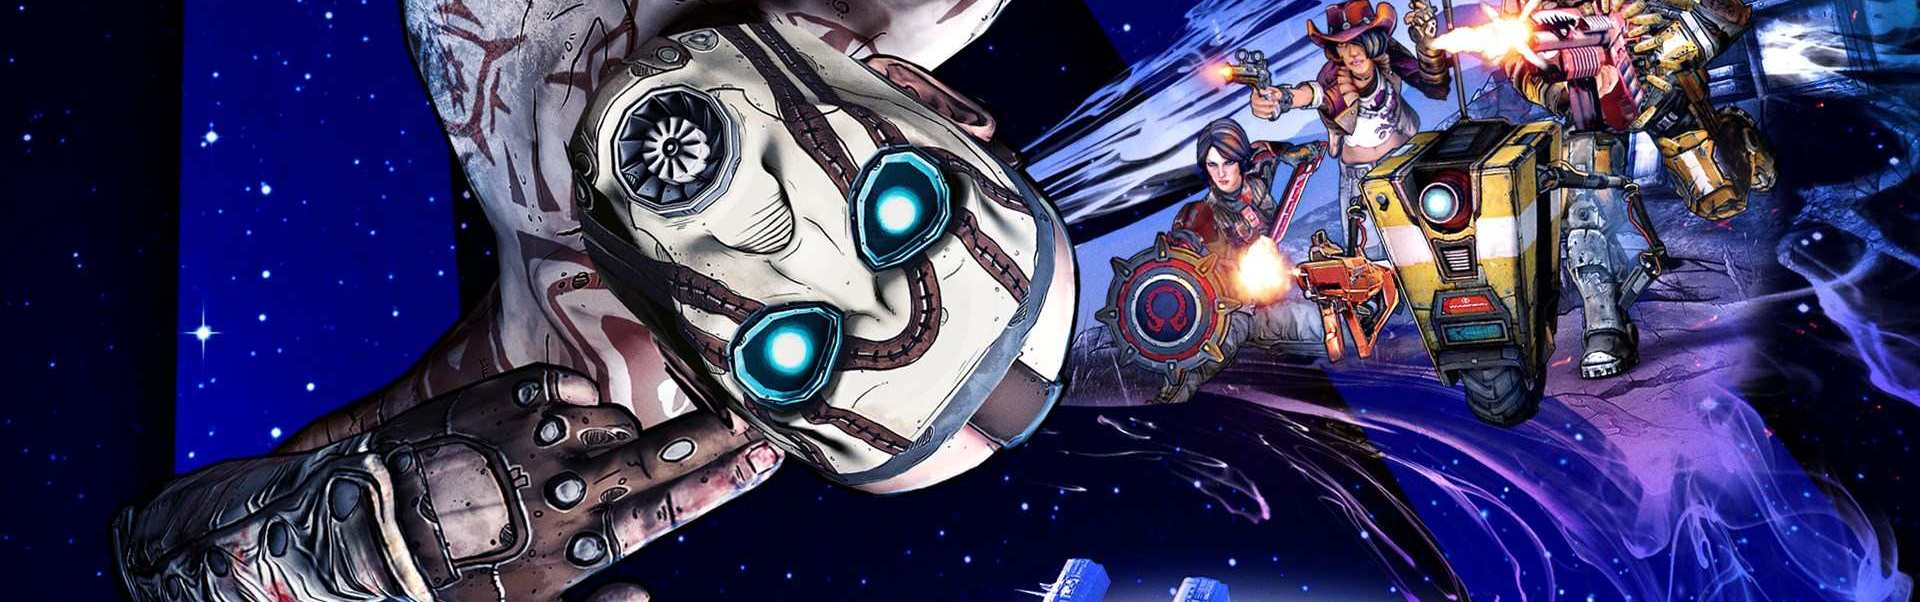 Borderlands: The Pre-Sequel (incl. Shock Drop Slaughter Pit DLC) Steam Key GLOBAL